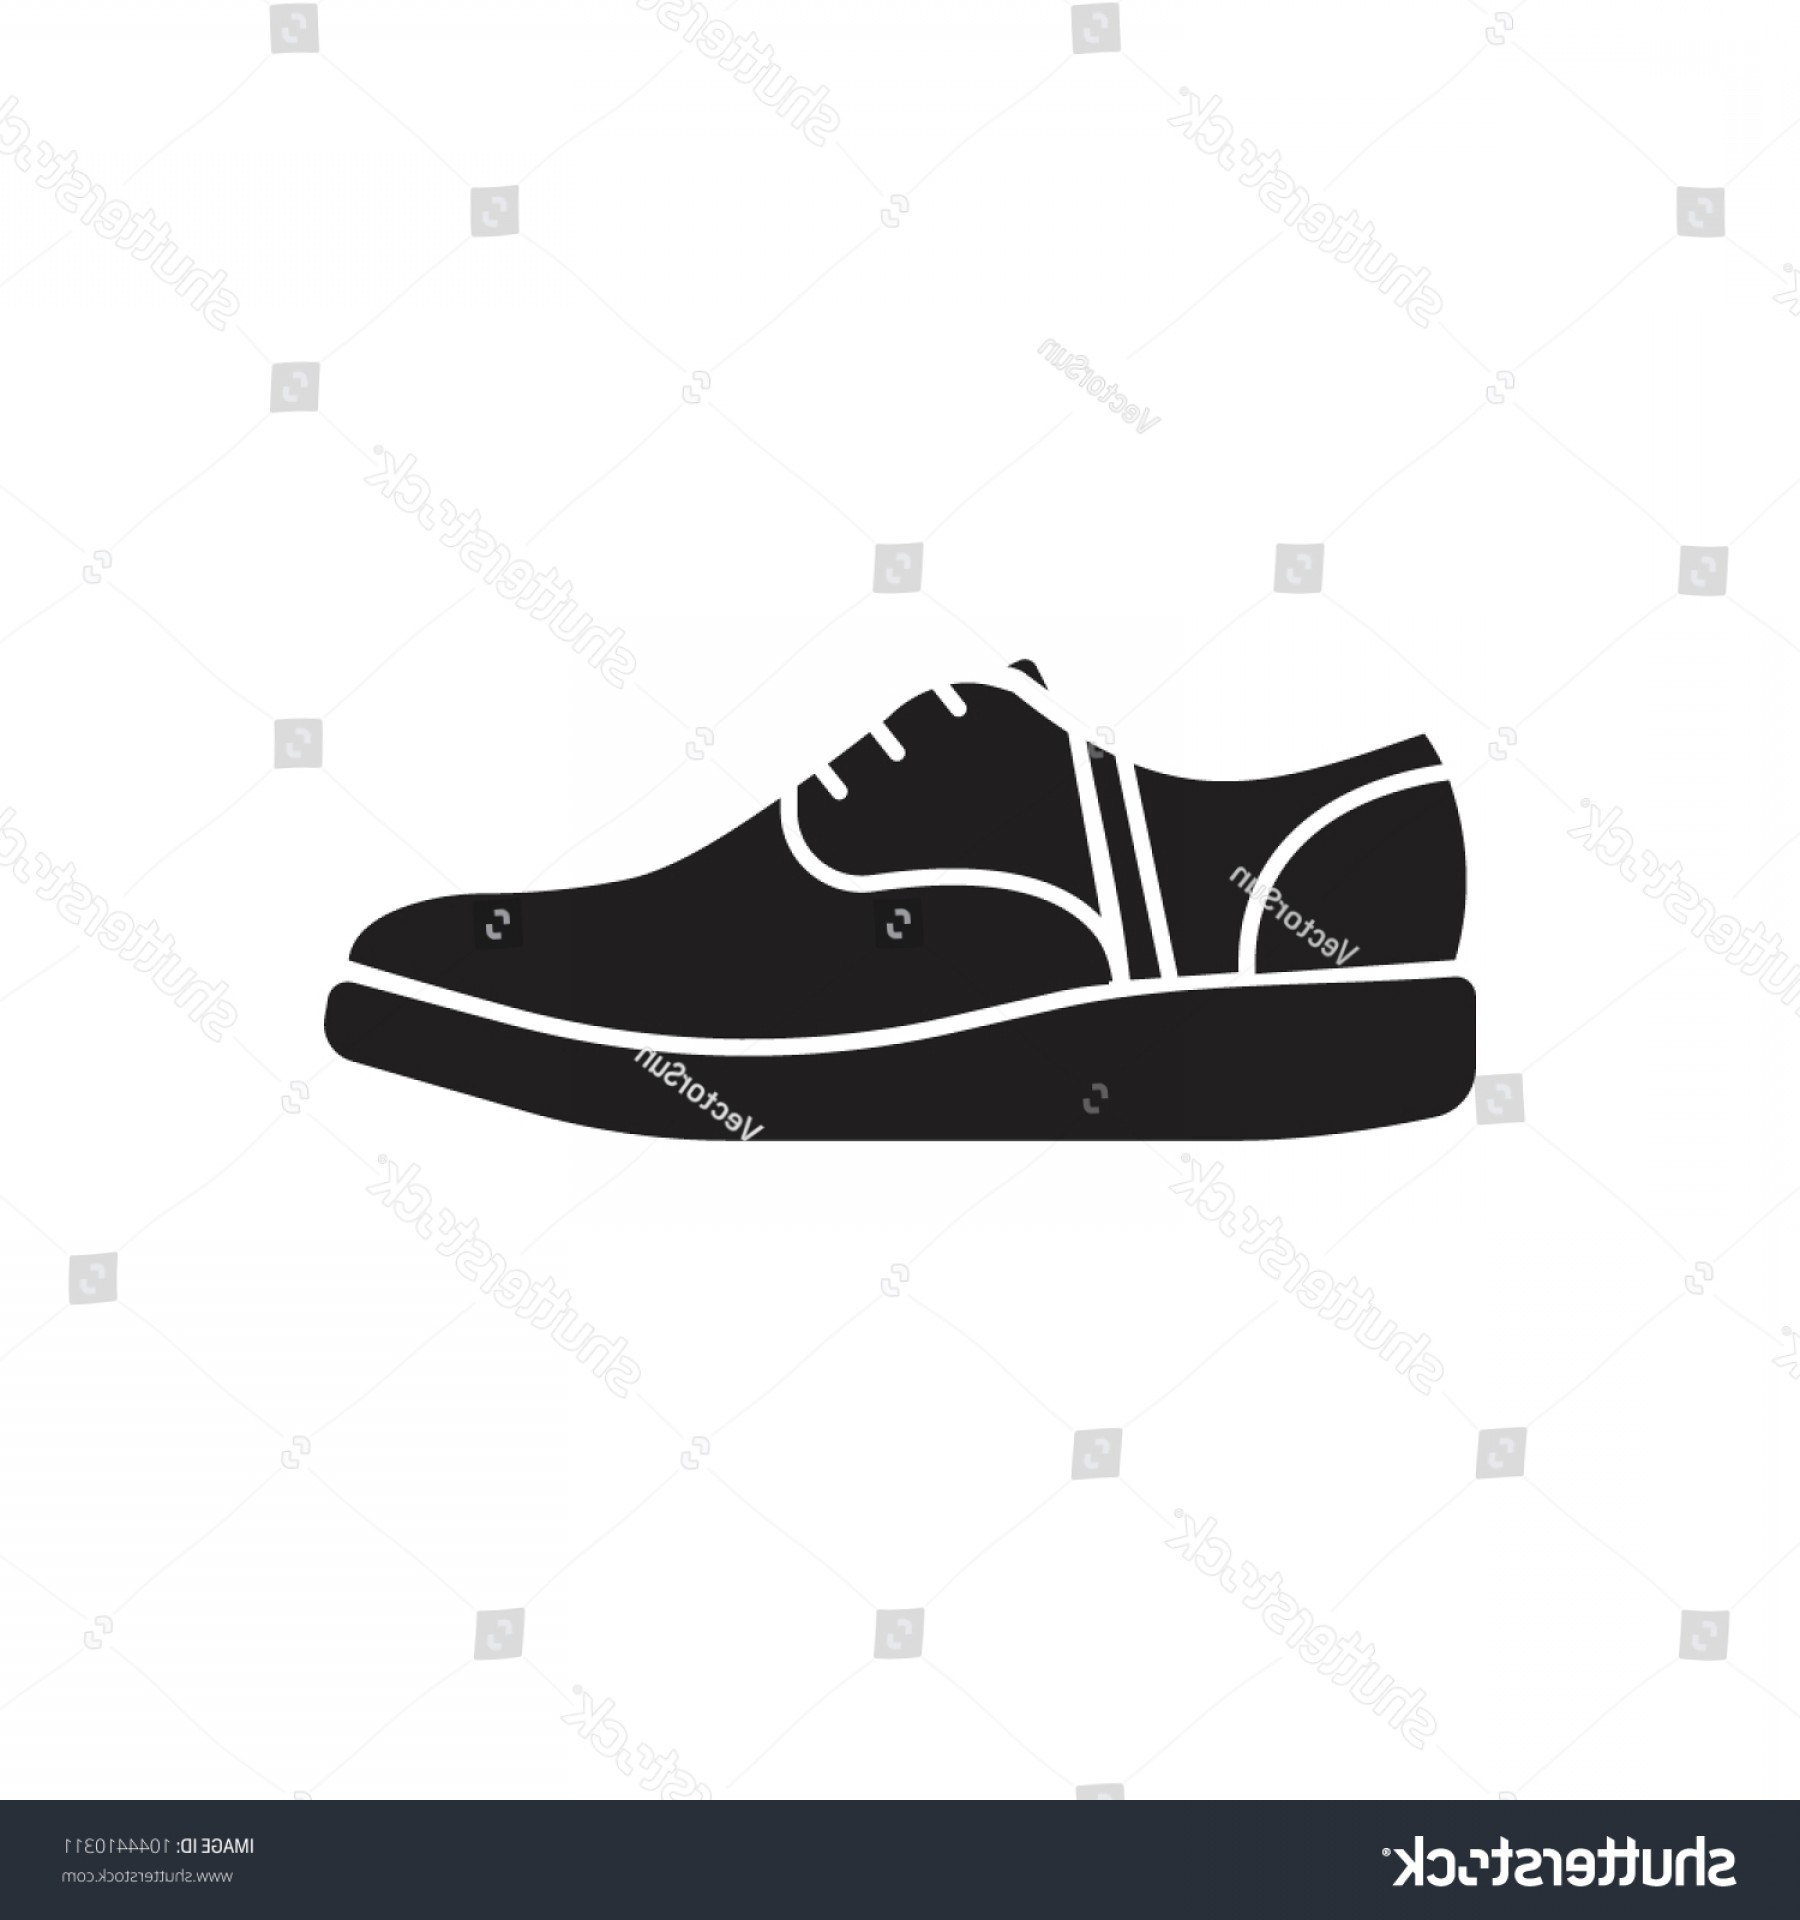 Sneaker Silhouette Vector: Sneaker Icon Silhouette Illustration Vector Web